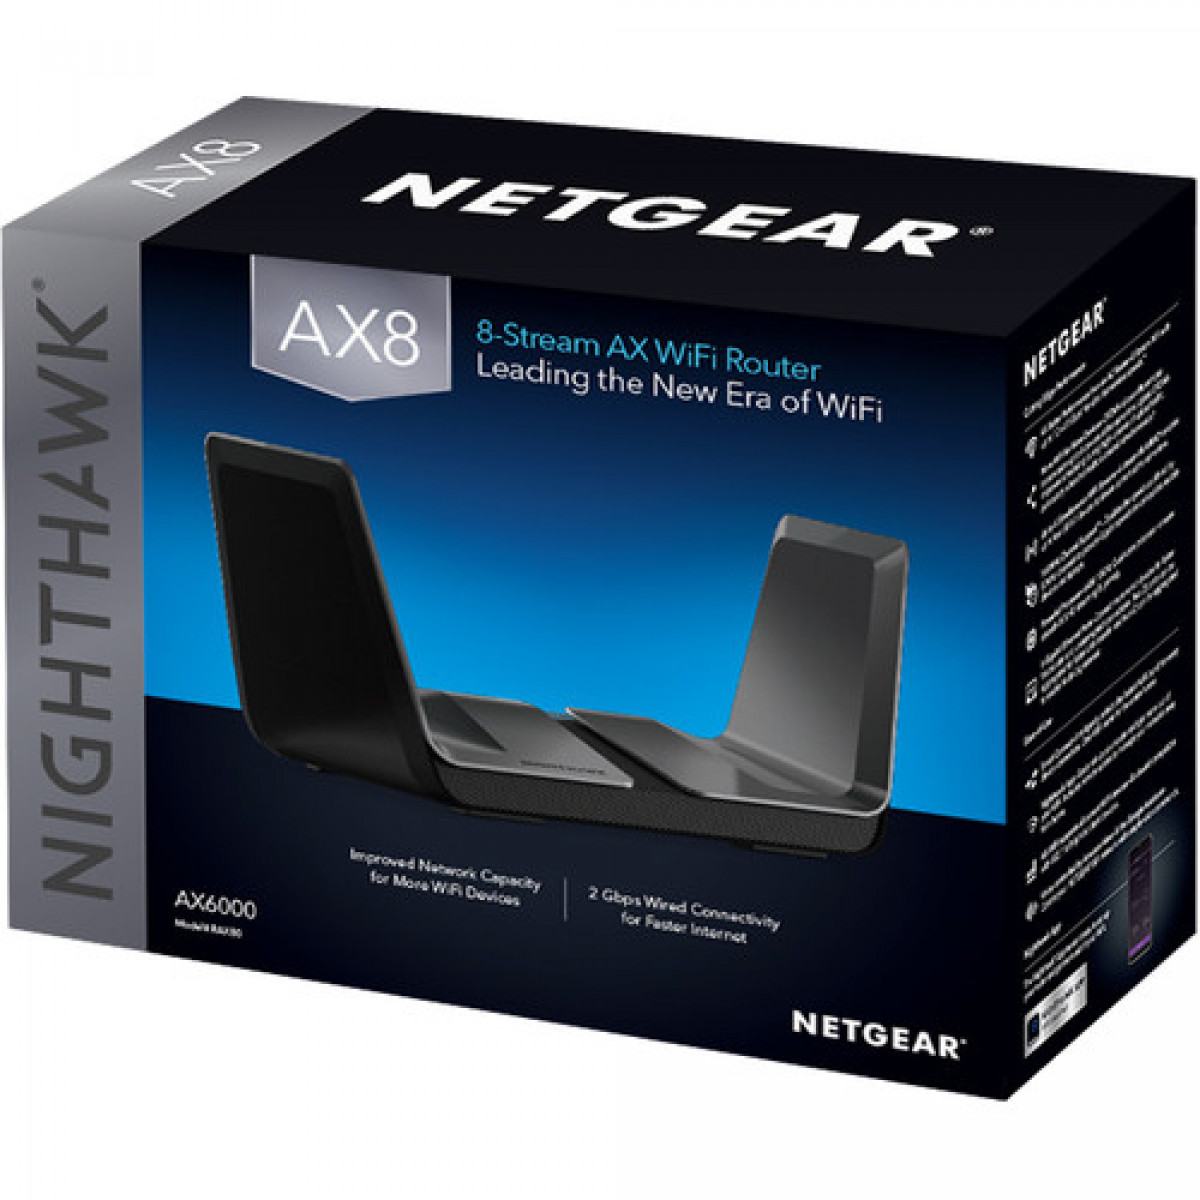 How to manually update Netgear Nighthawk AX8 Wi-Fi 6 router's firmware?